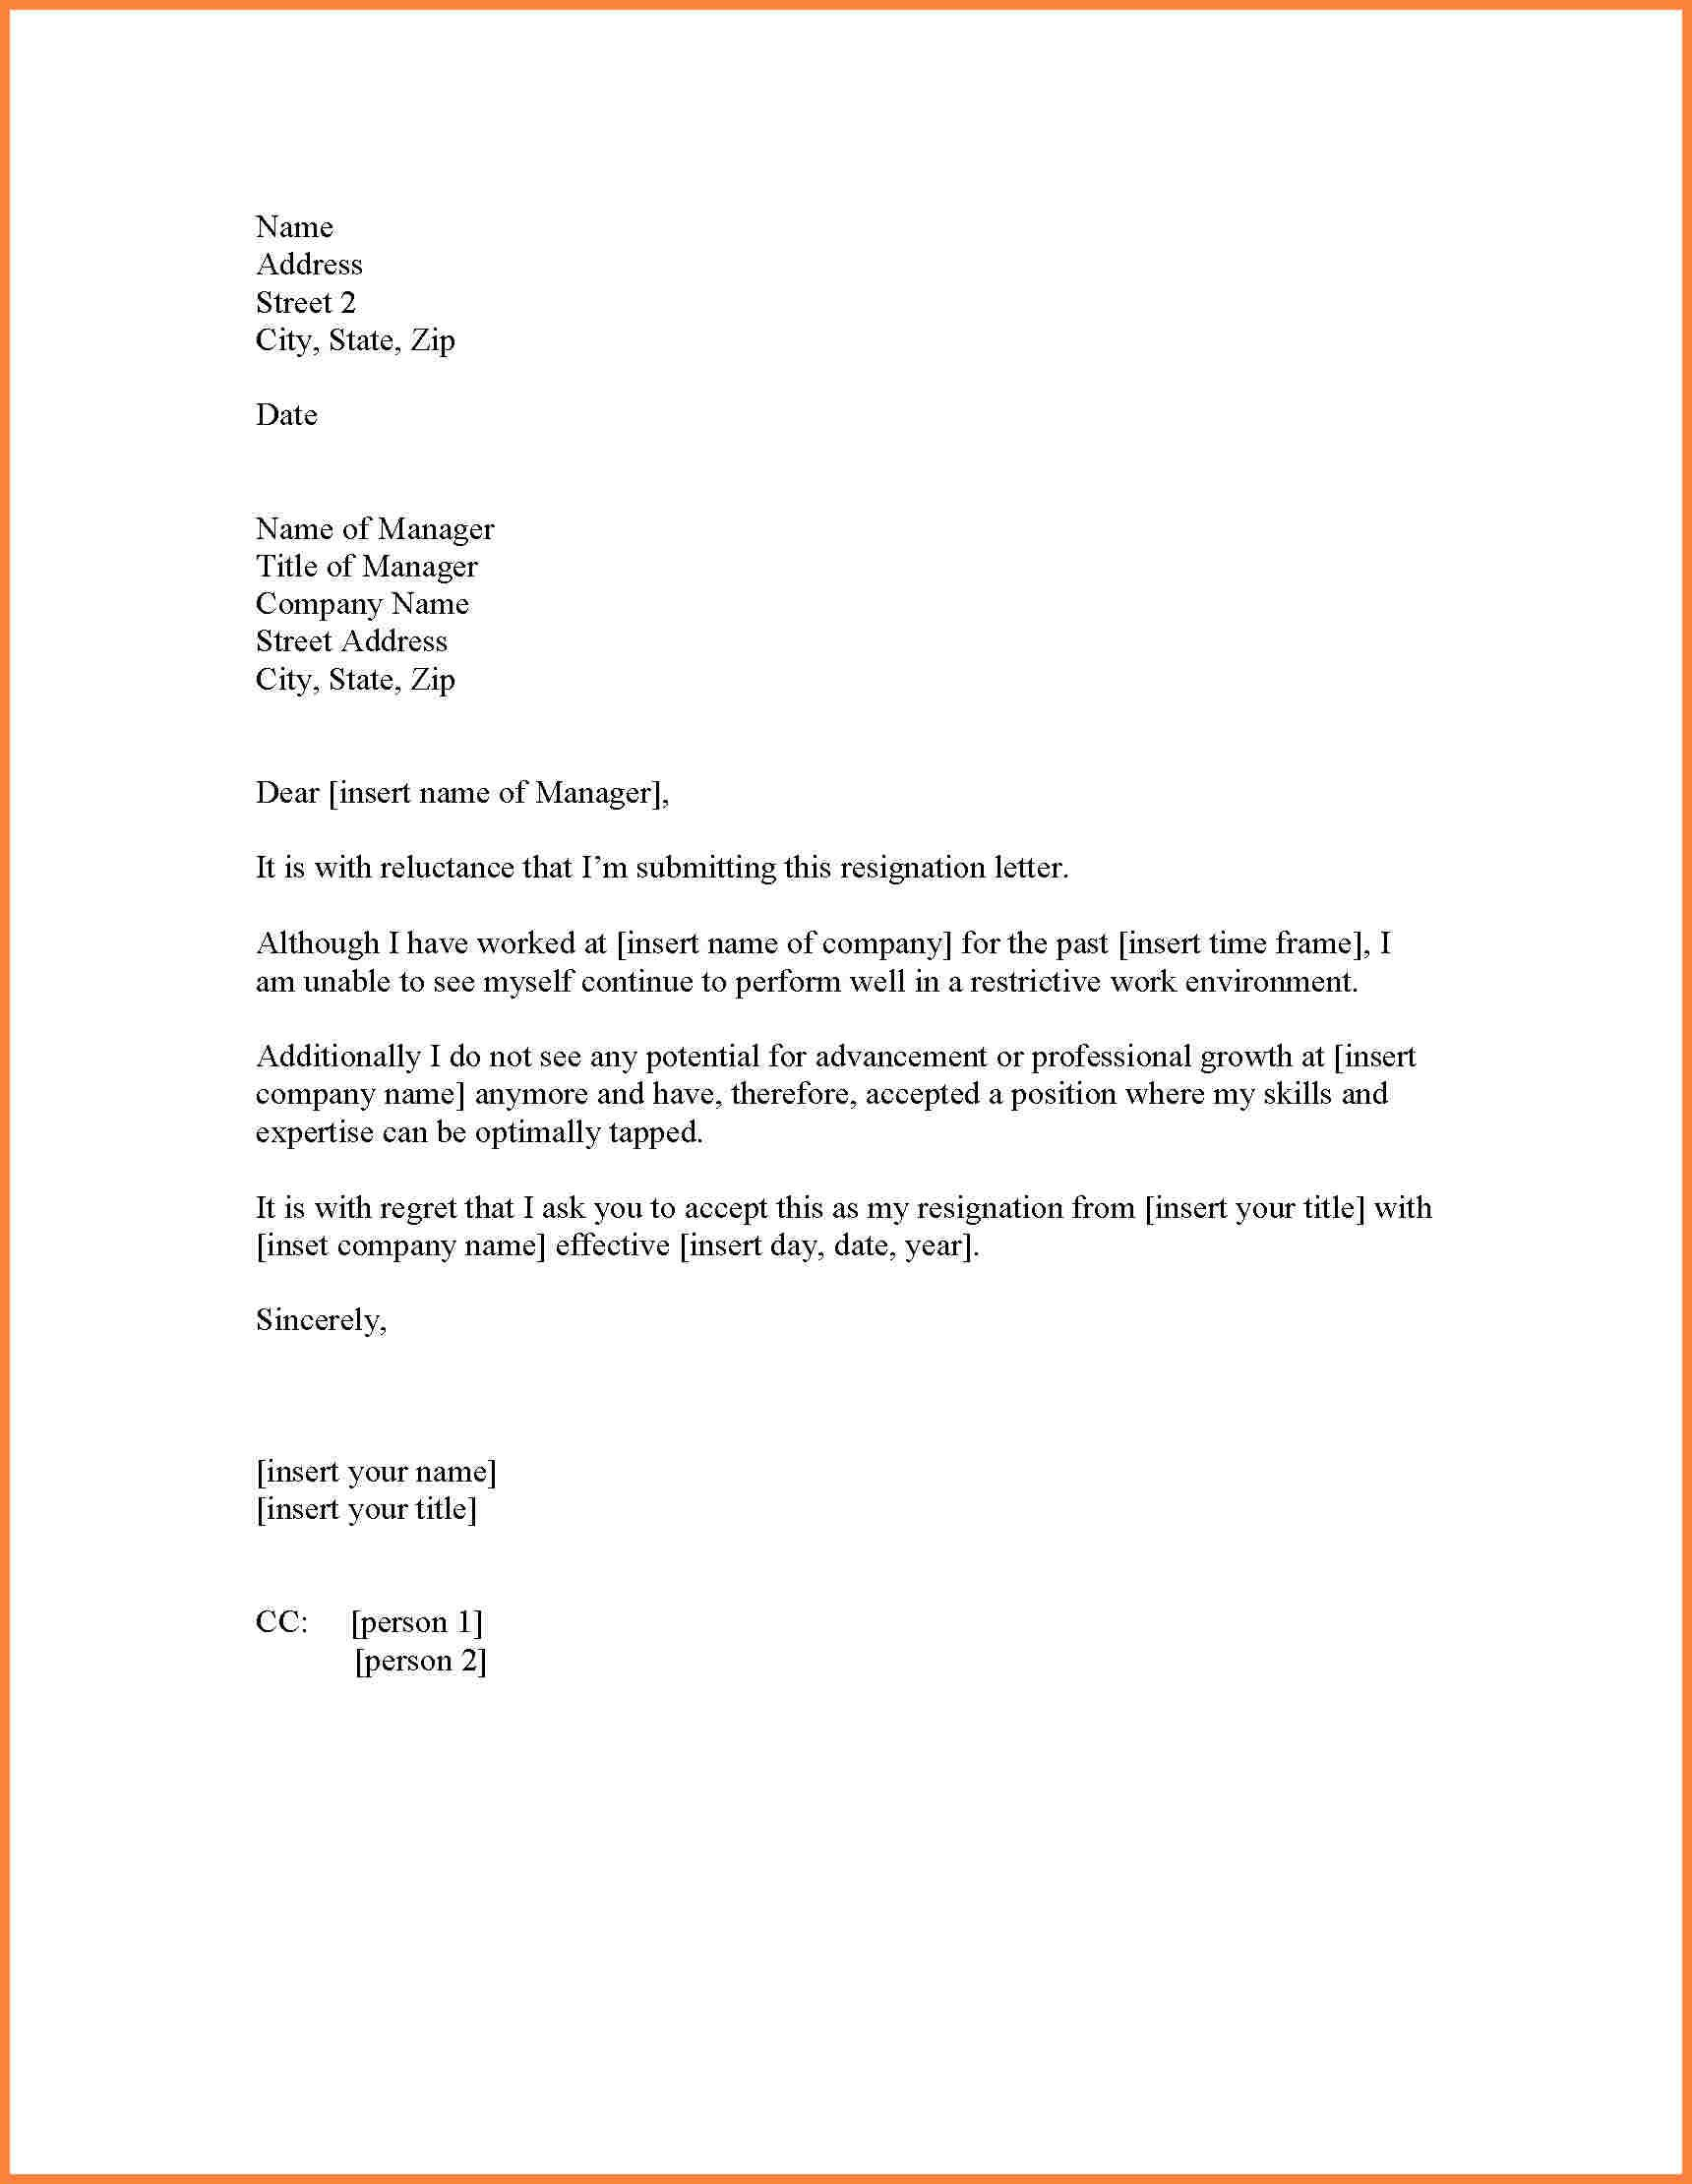 ... Letter For Personal Reasons The Legal  Profession Depends On Clear And Exact Language Cover Letter Examples  Template Samples Cv Downloads (1720×2220)